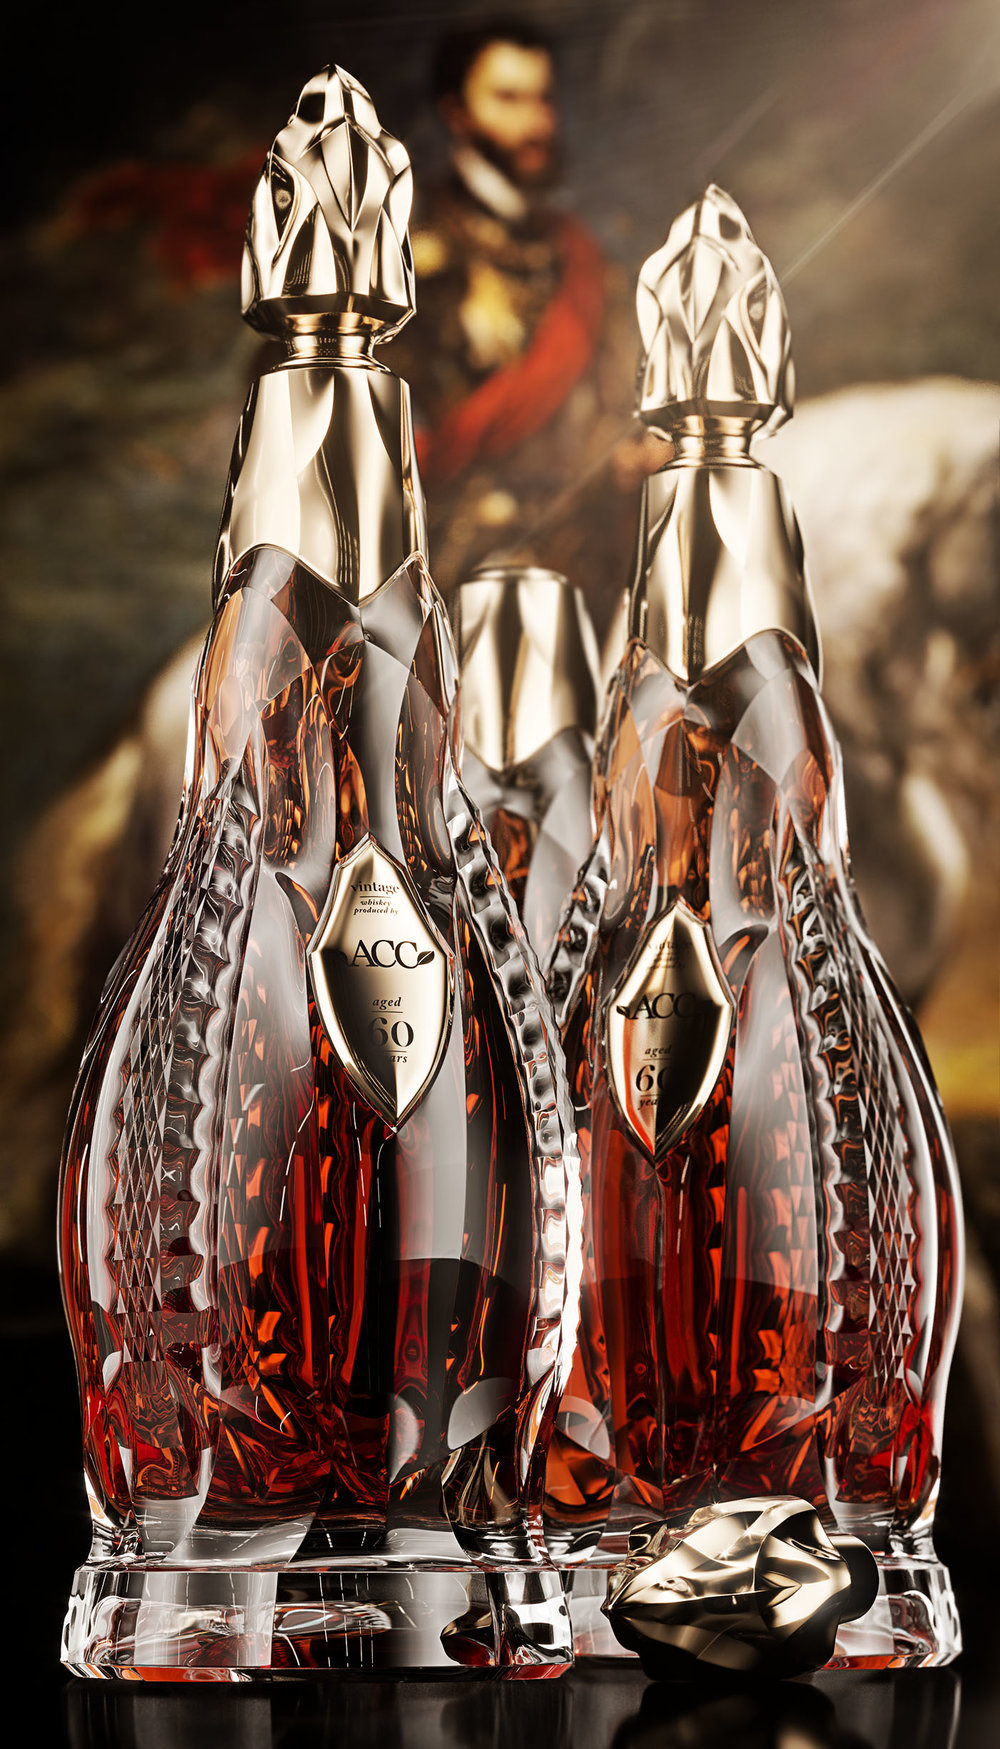 Luxury whisky bottle 6.jpg